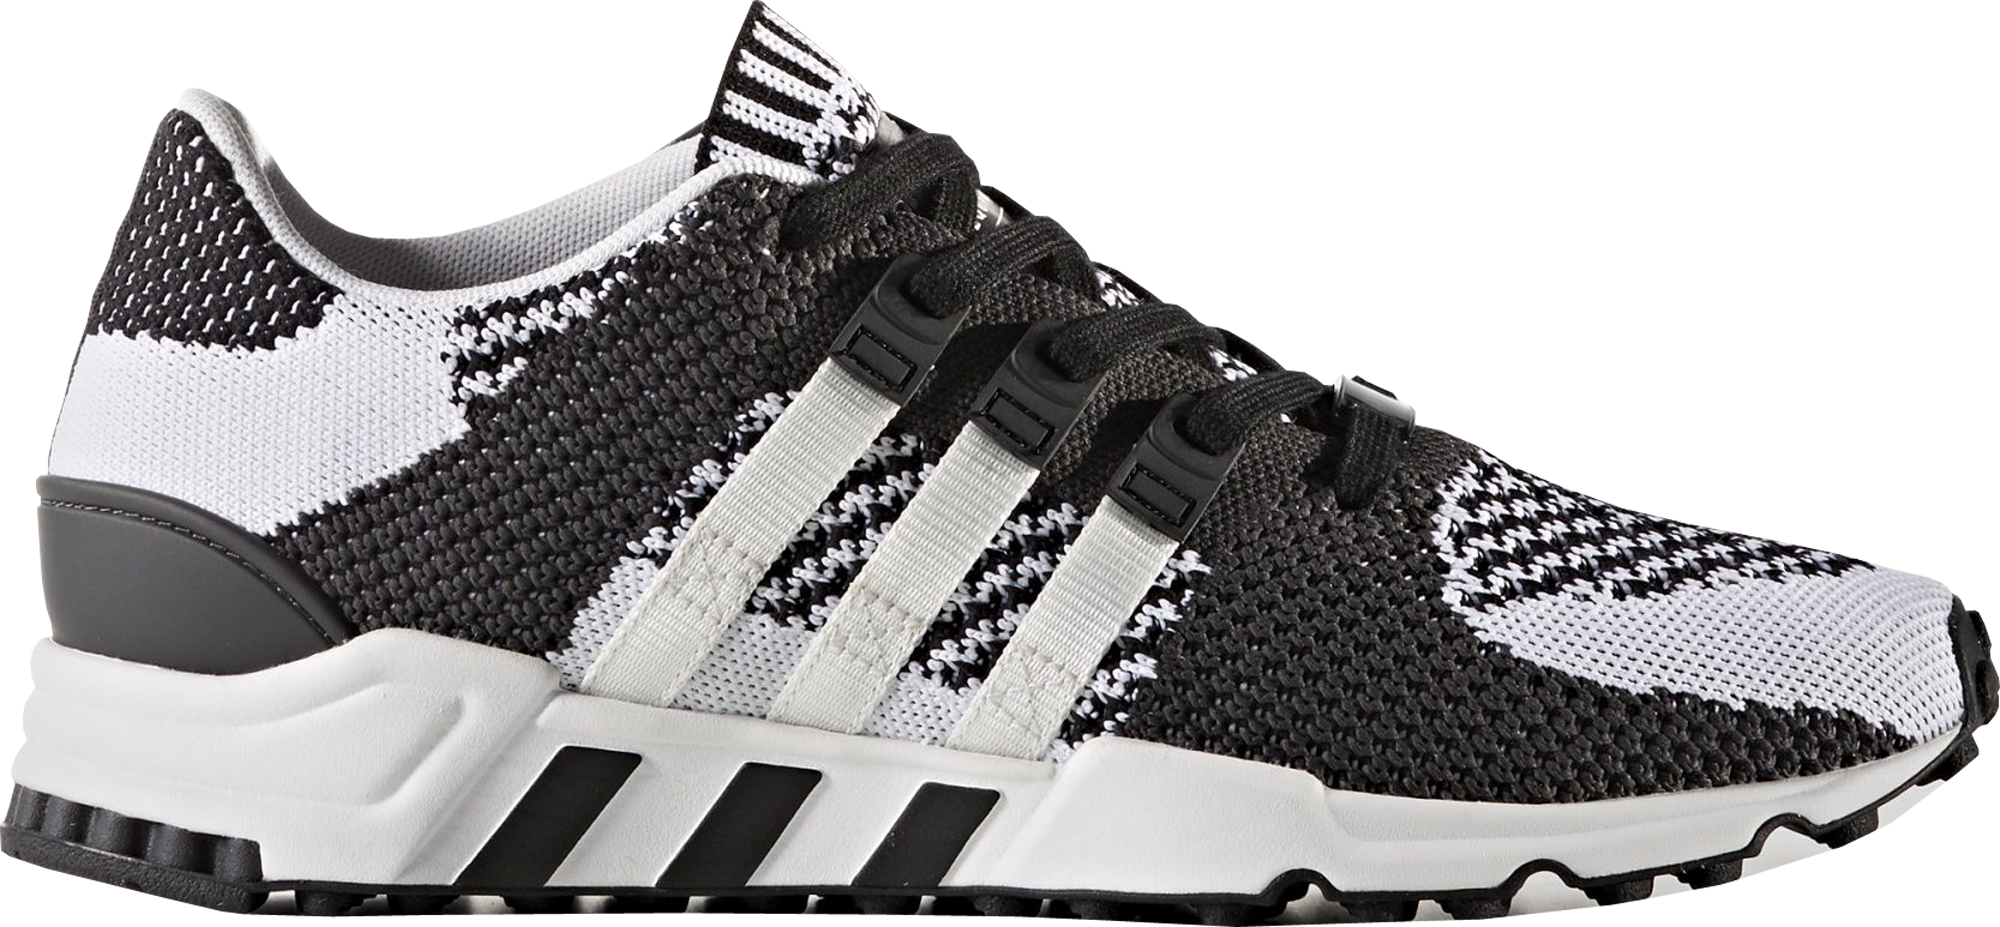 adidas EQT Running Guidance Primeknit S79127 low cost